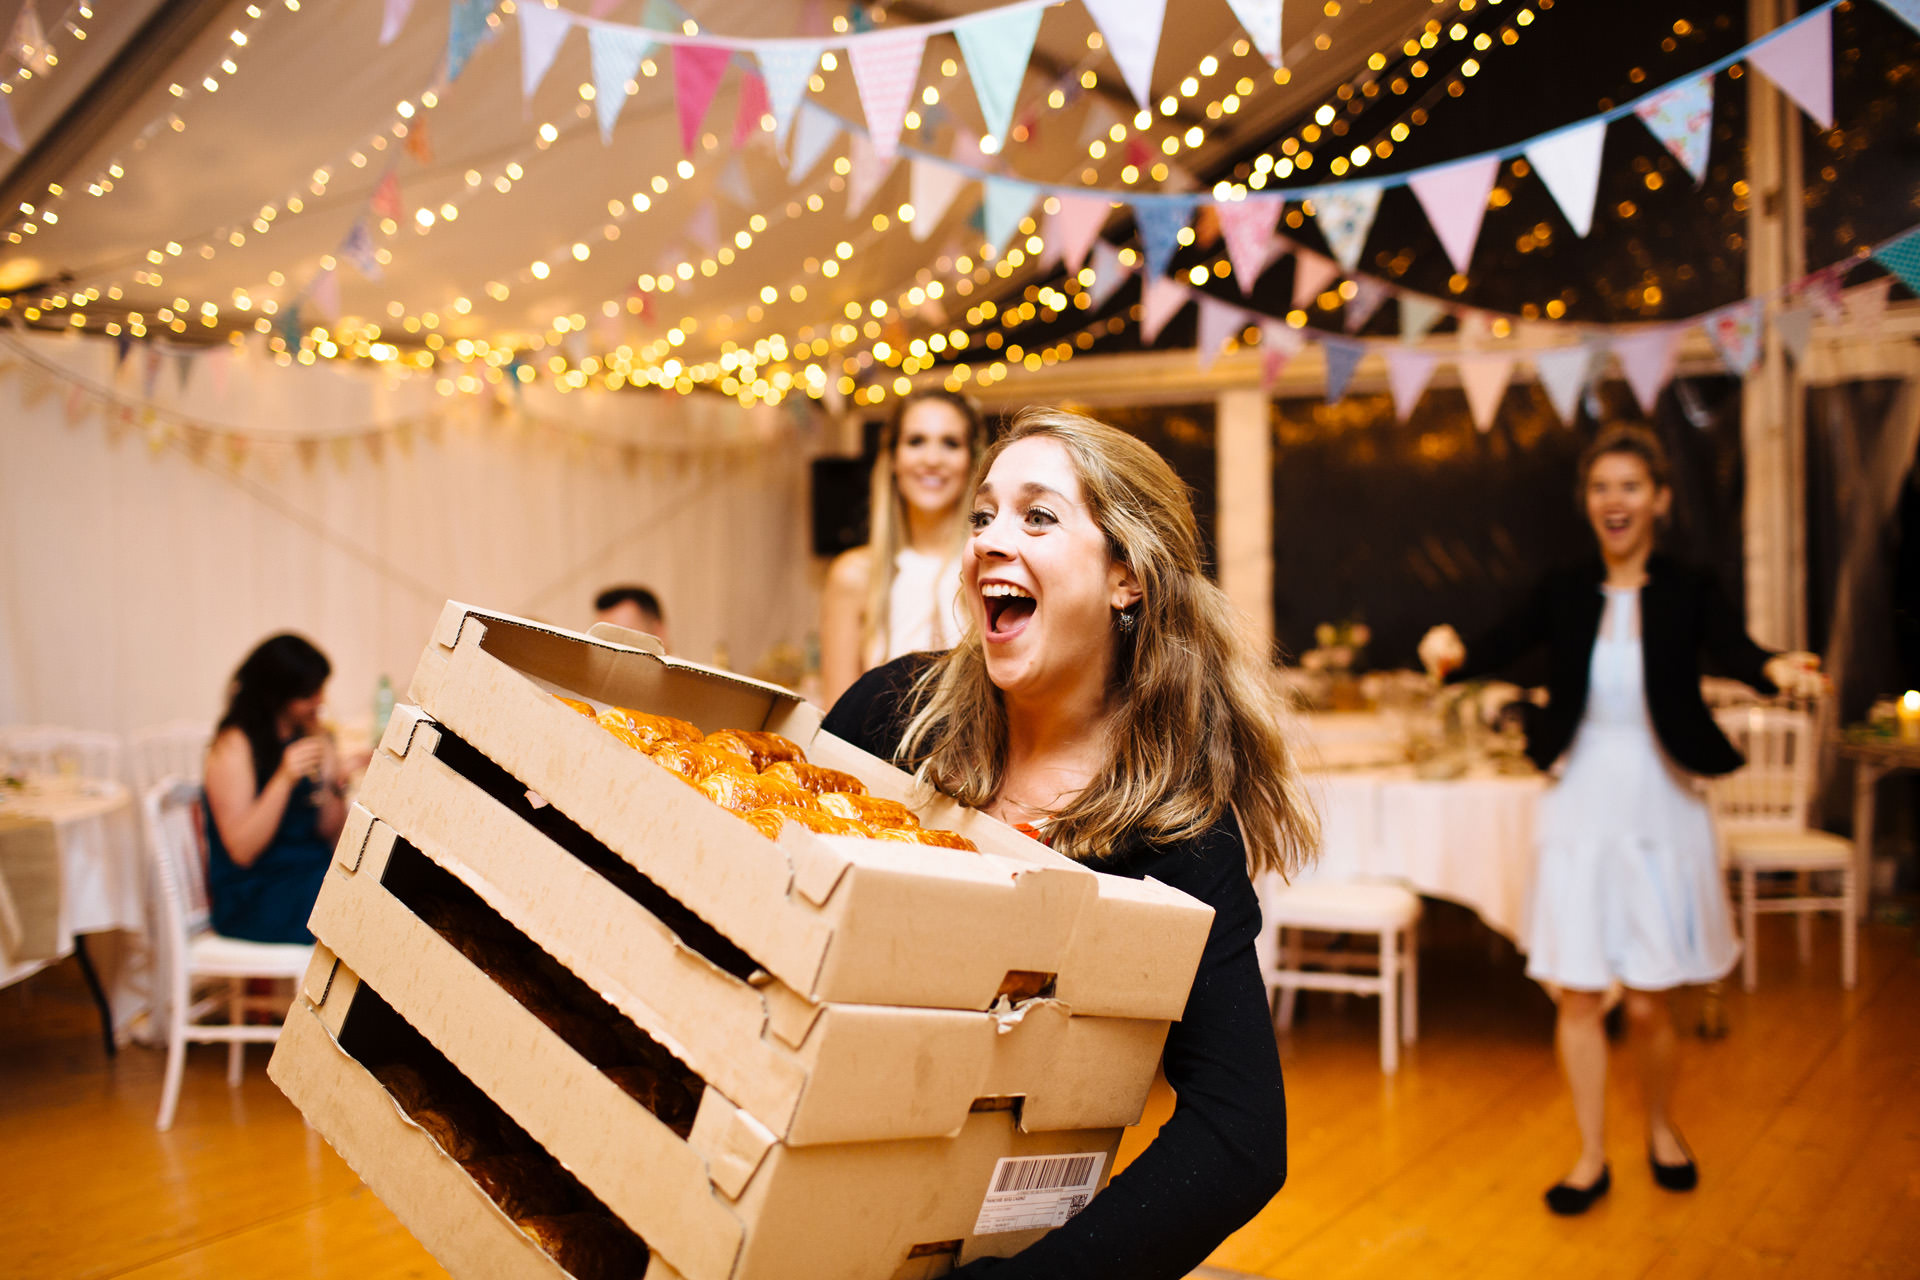 wedding evening food being delivered